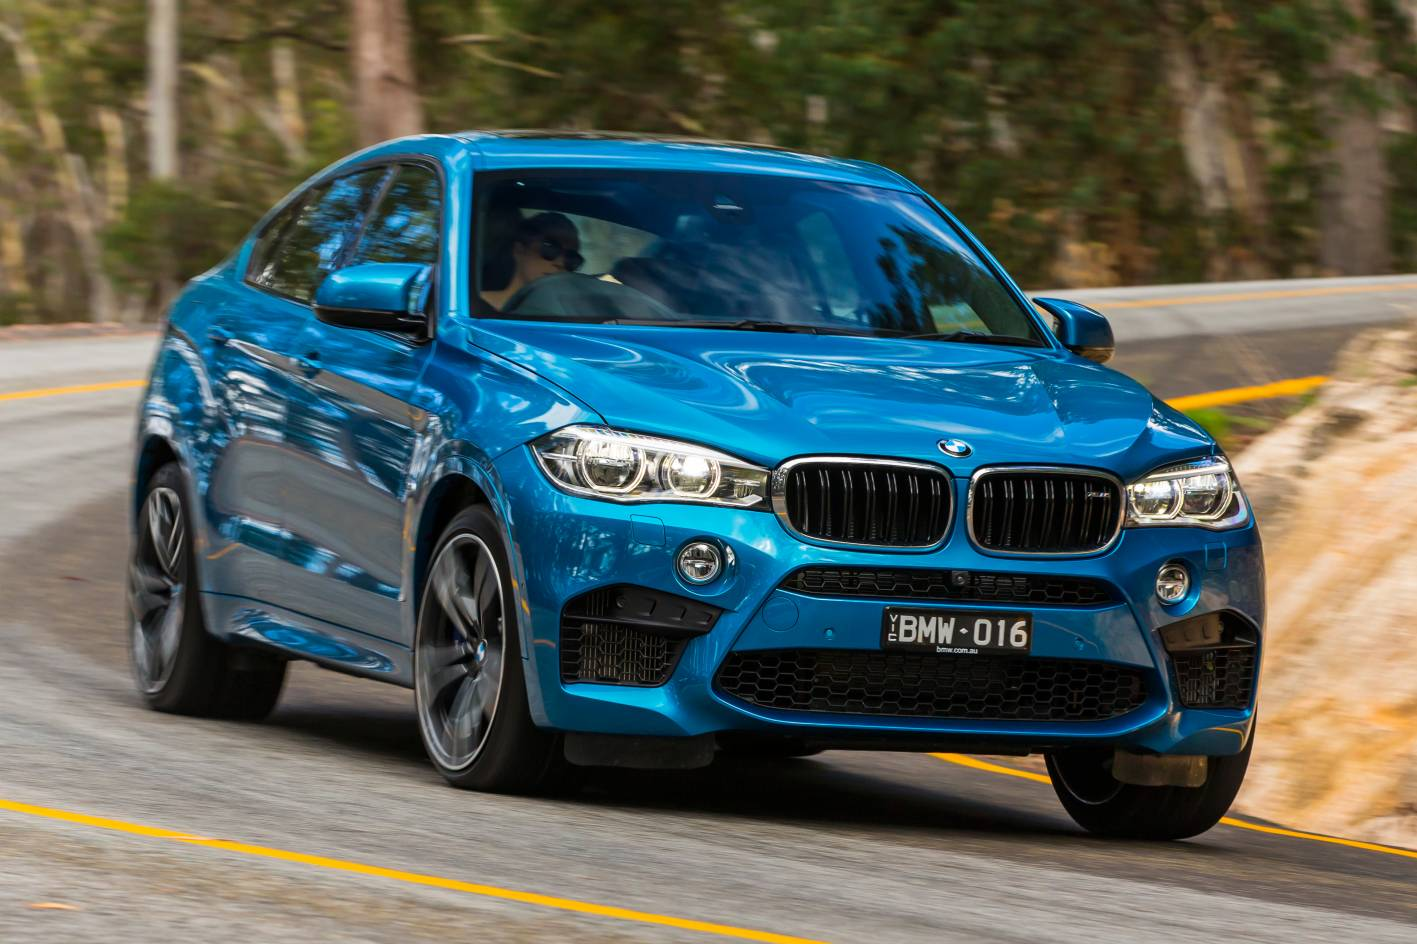 2015 bmw x5 m and x6 m arrive in oz with stonking 423kw 750nm. Black Bedroom Furniture Sets. Home Design Ideas